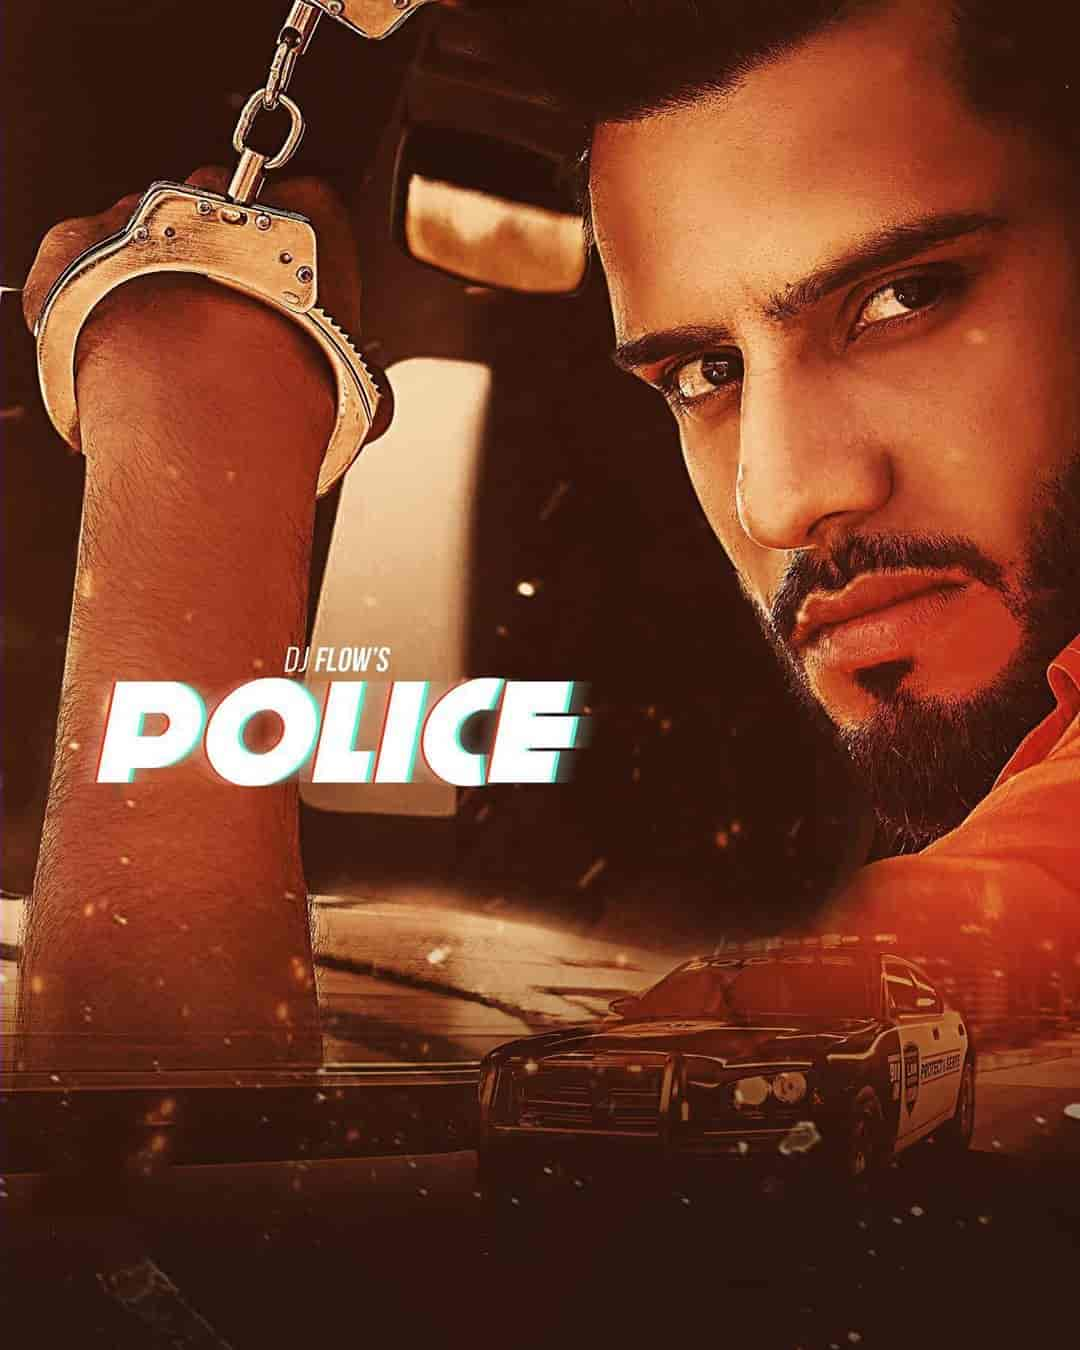 Police Song Images By Dj Flow and Afsana Khan